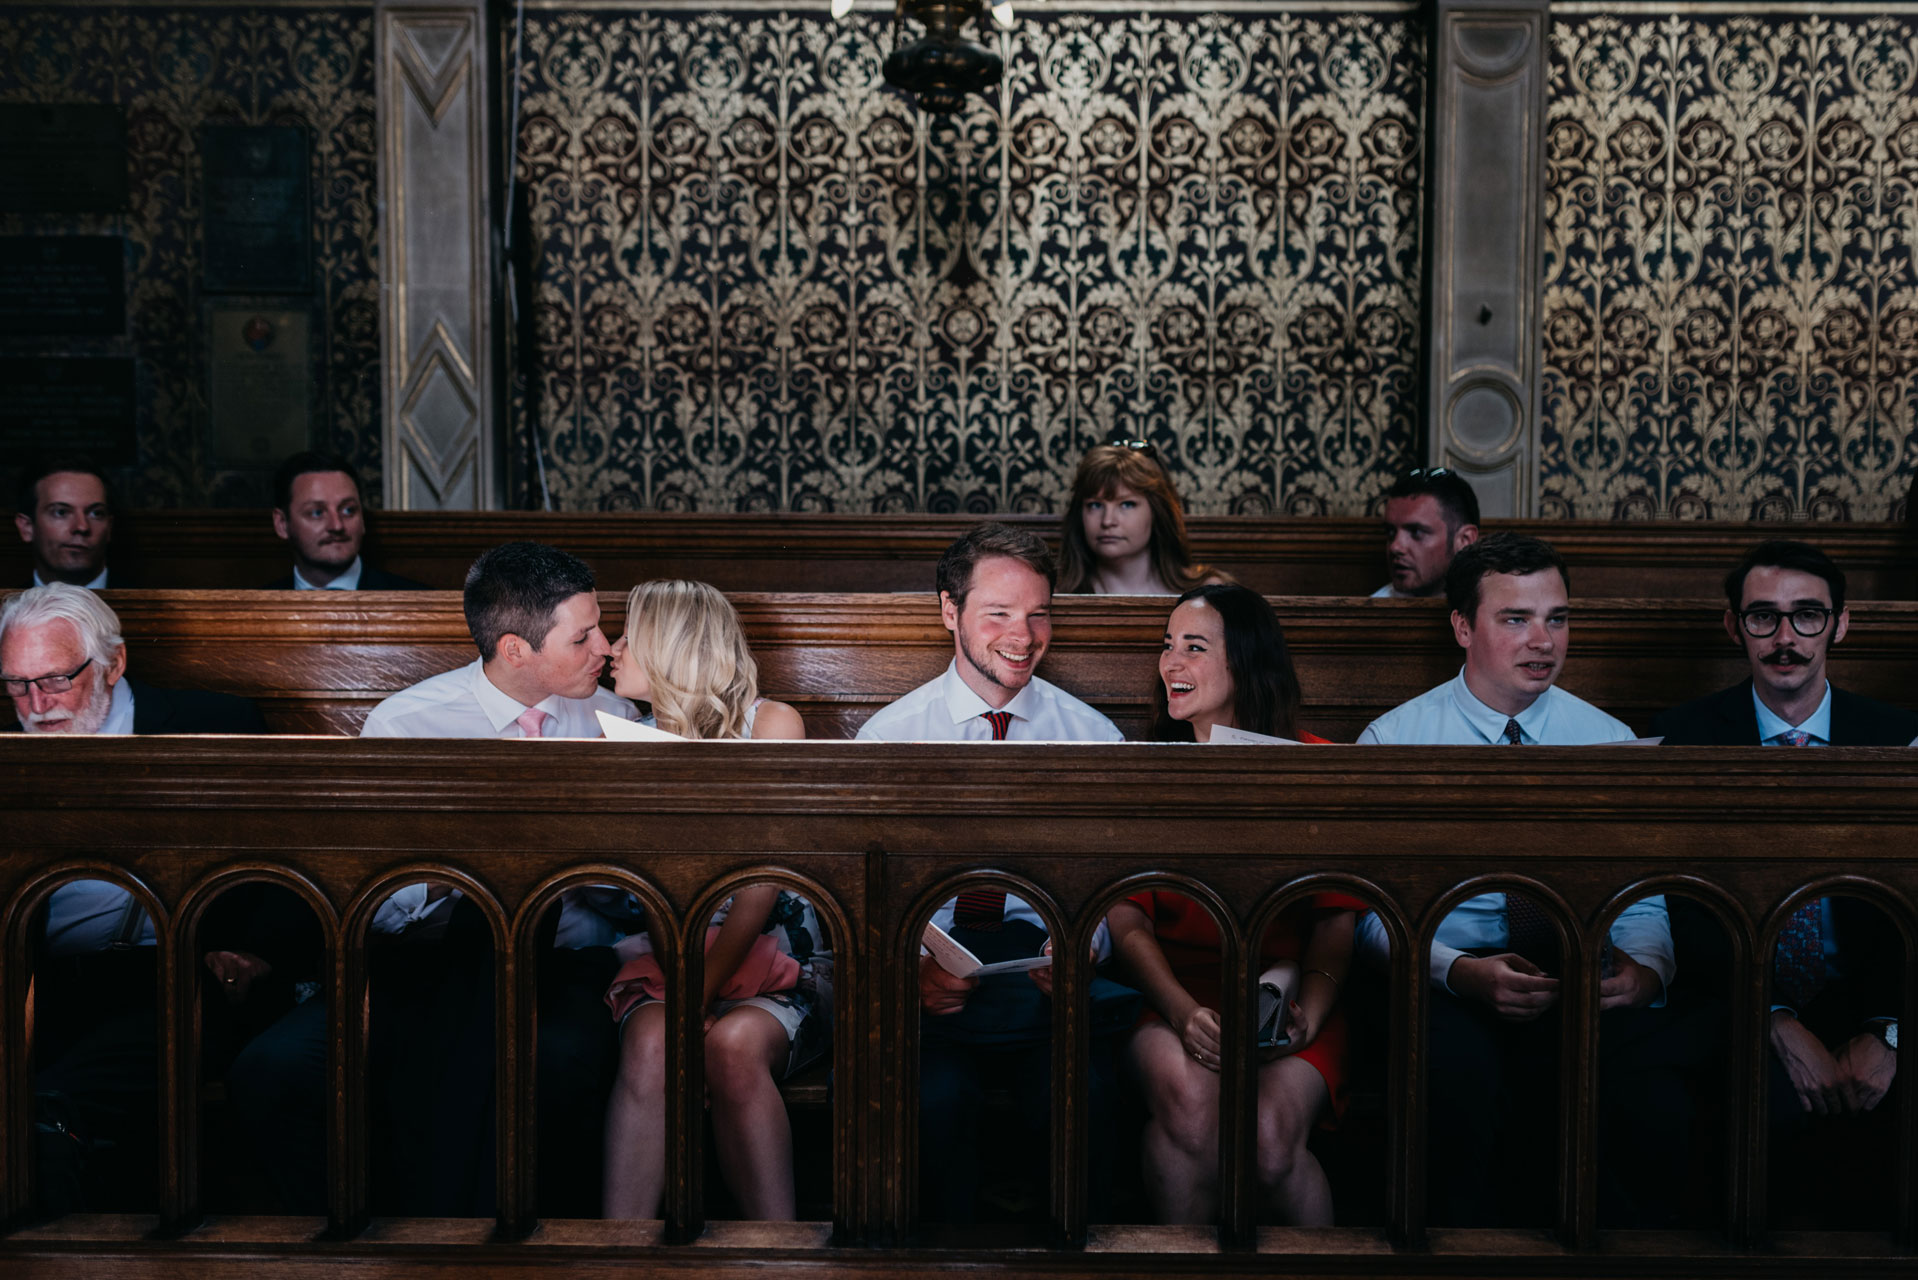 wedding guest sitting in the pews